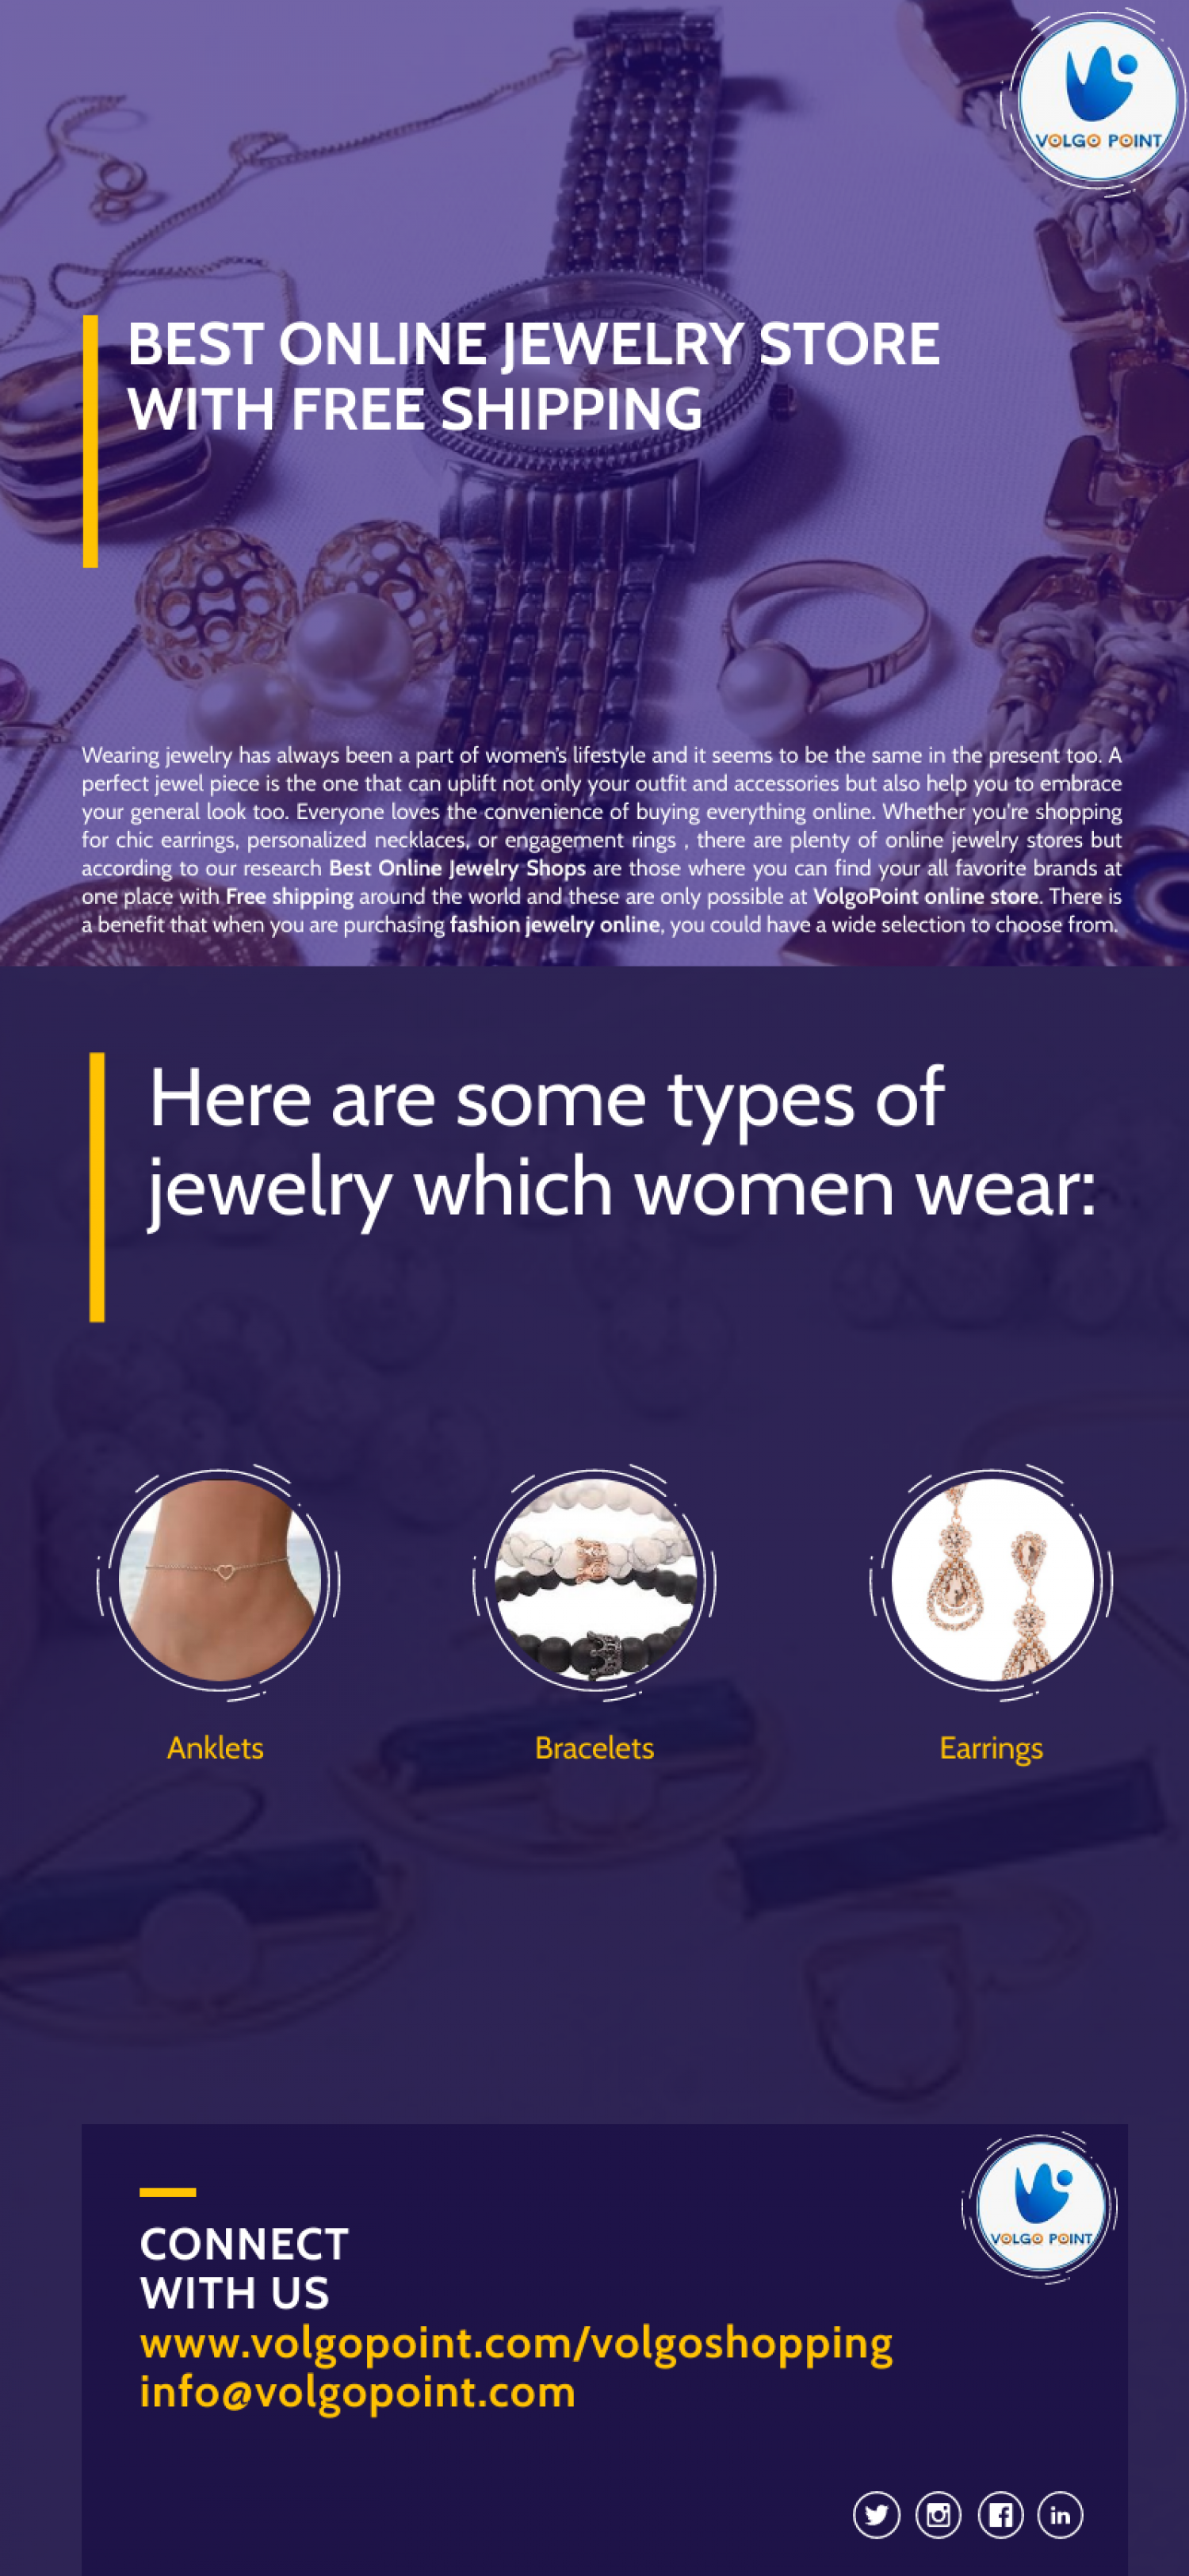 Best Online Jewelry Shops at volgopoint Infographic